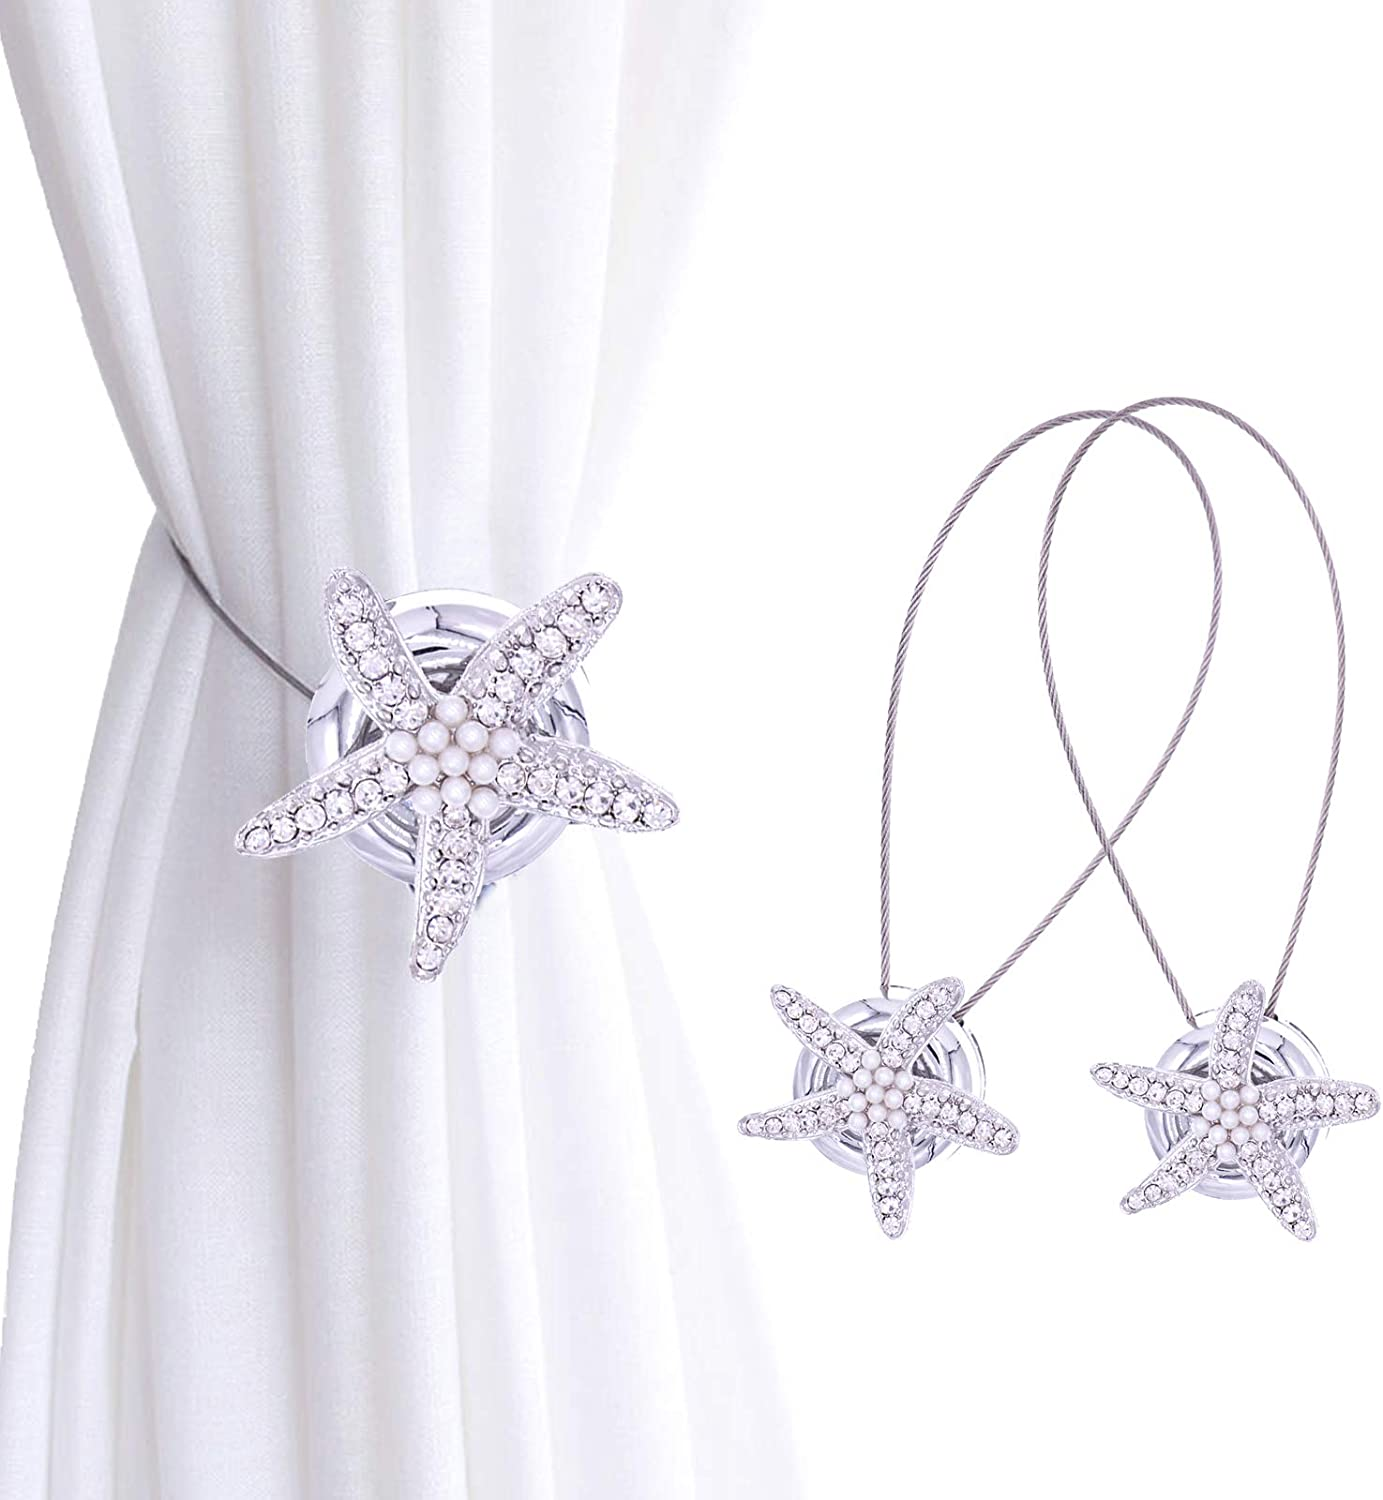 2 Pcs Star Curtain Tie-back Curtain Holdback Drape Clips Fastener Buckle